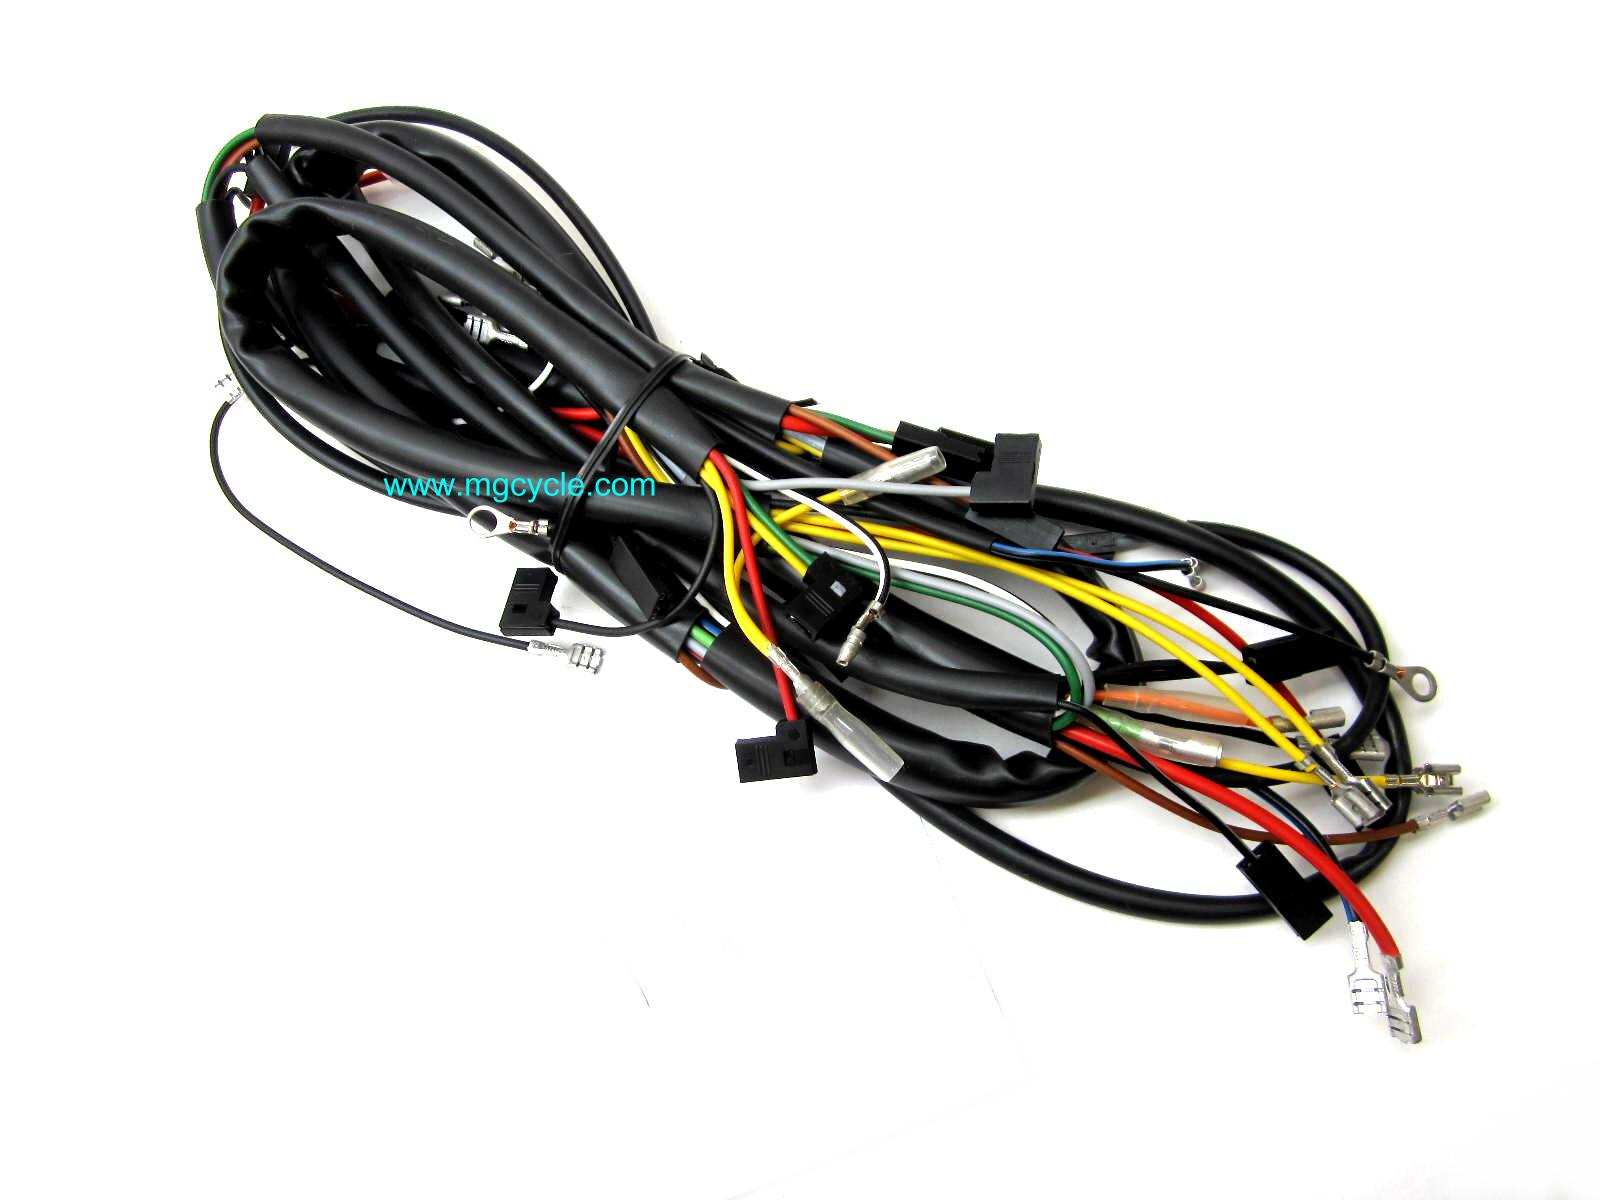 hight resolution of main wire harness v7 sport 750s